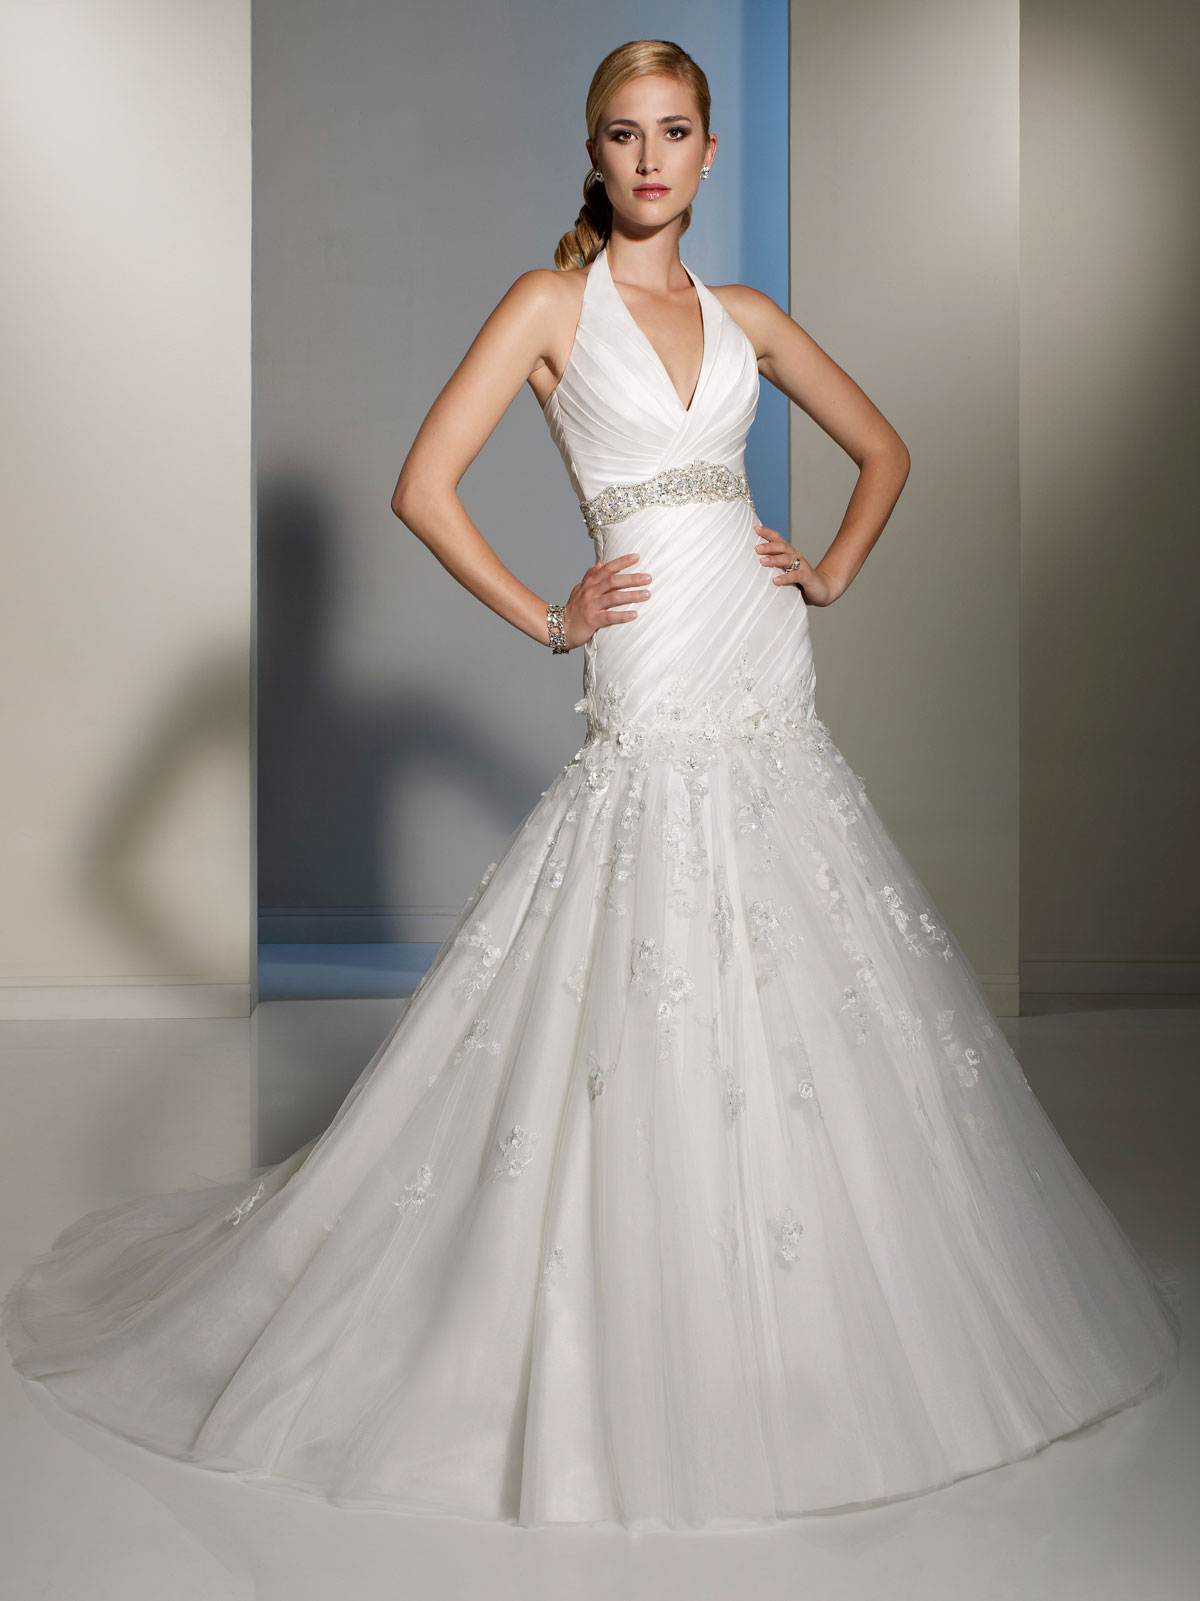 halter wedding gown halter top wedding dresses Halter dropped waist lace wedding dress with crystal waistband